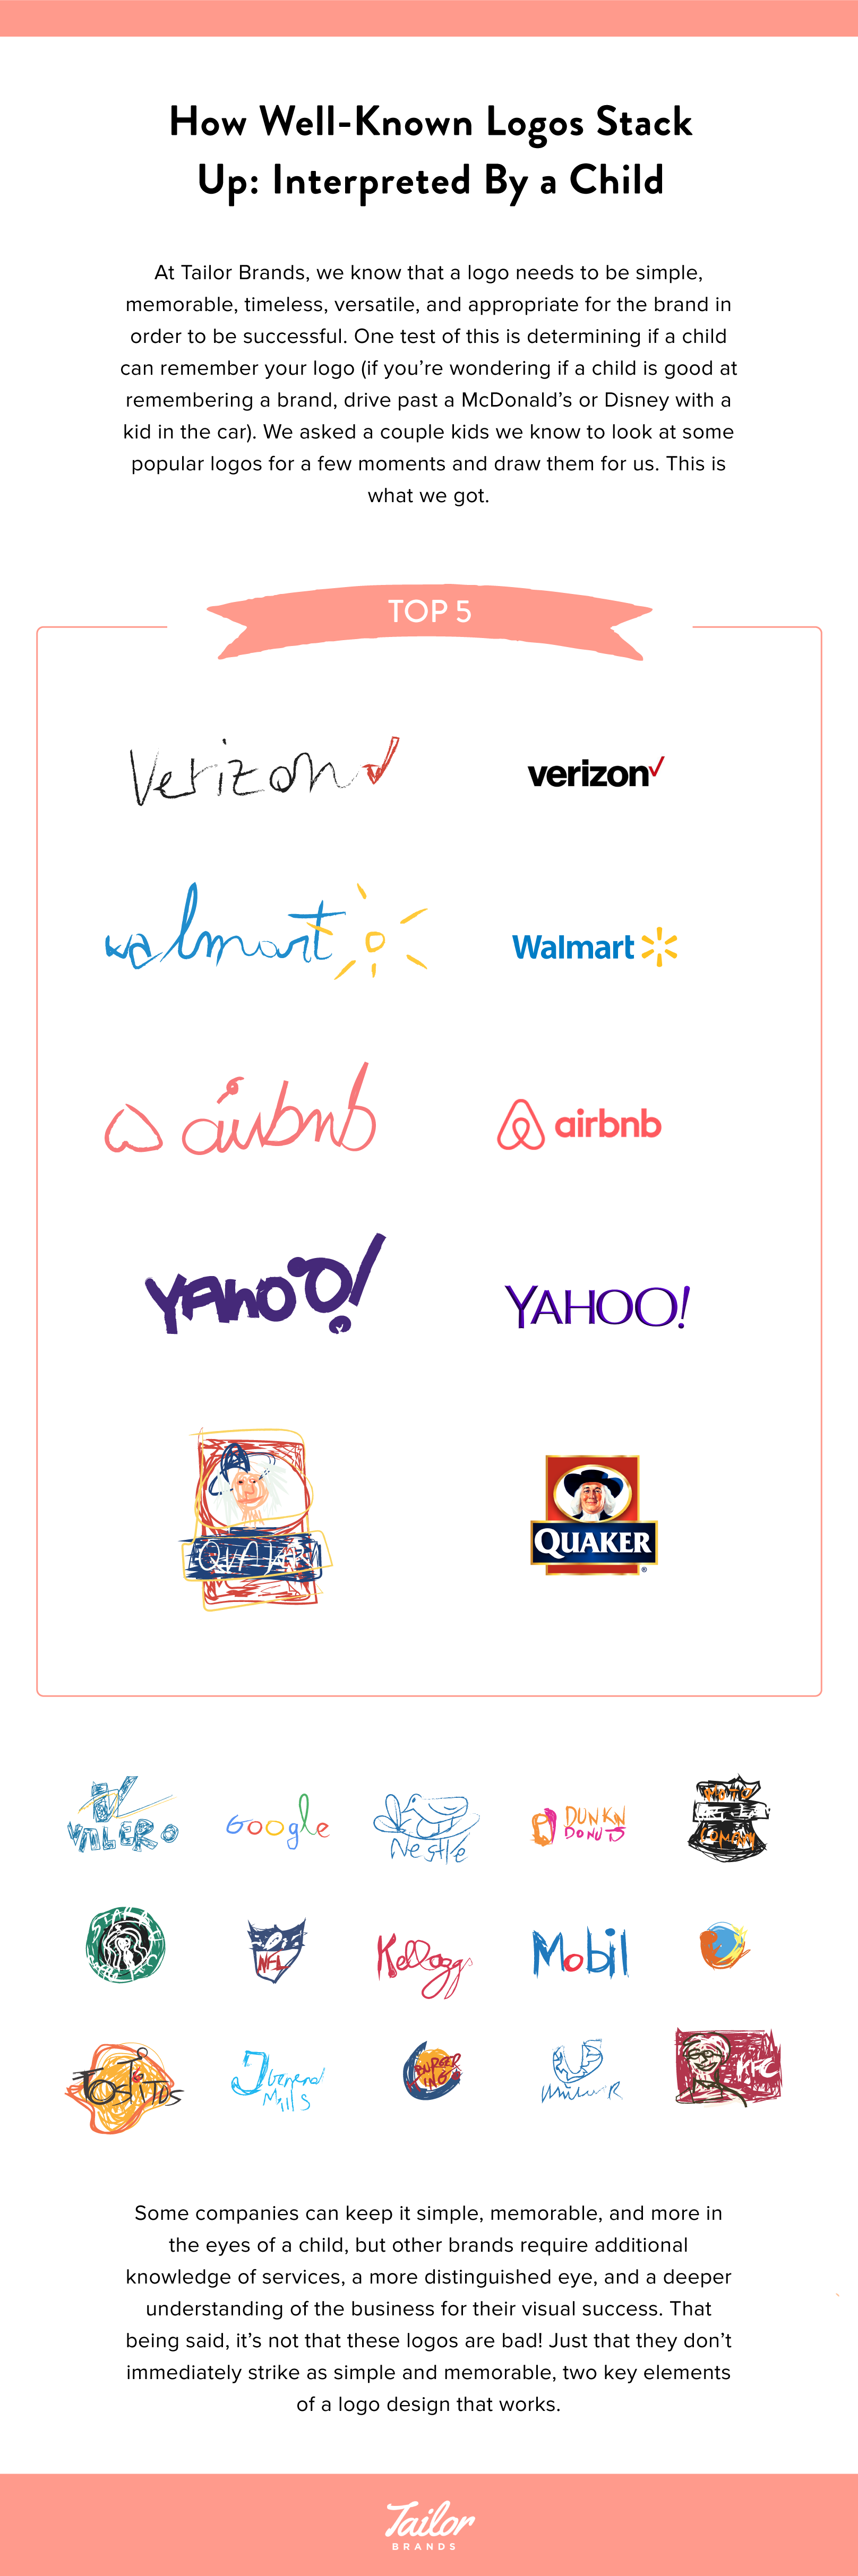 20 Examples of Popular Logos redesigned by a child